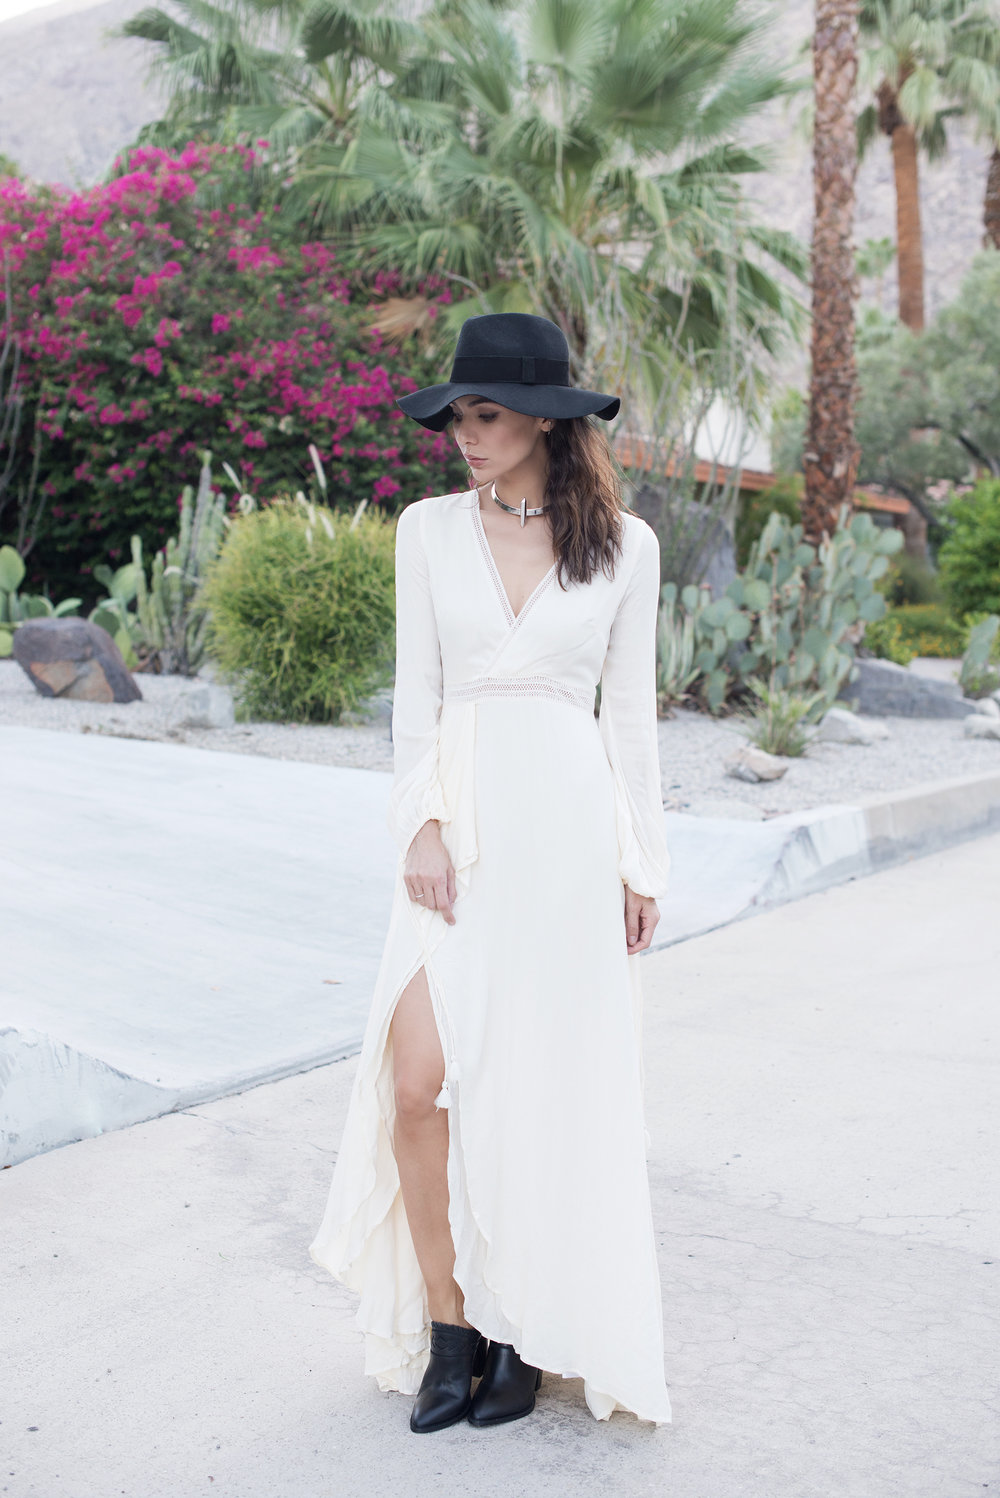 DRESS   /   SHOES   / HAT (Anine Bing, similar   HERE  ) /   NECKLACE (now on sale)